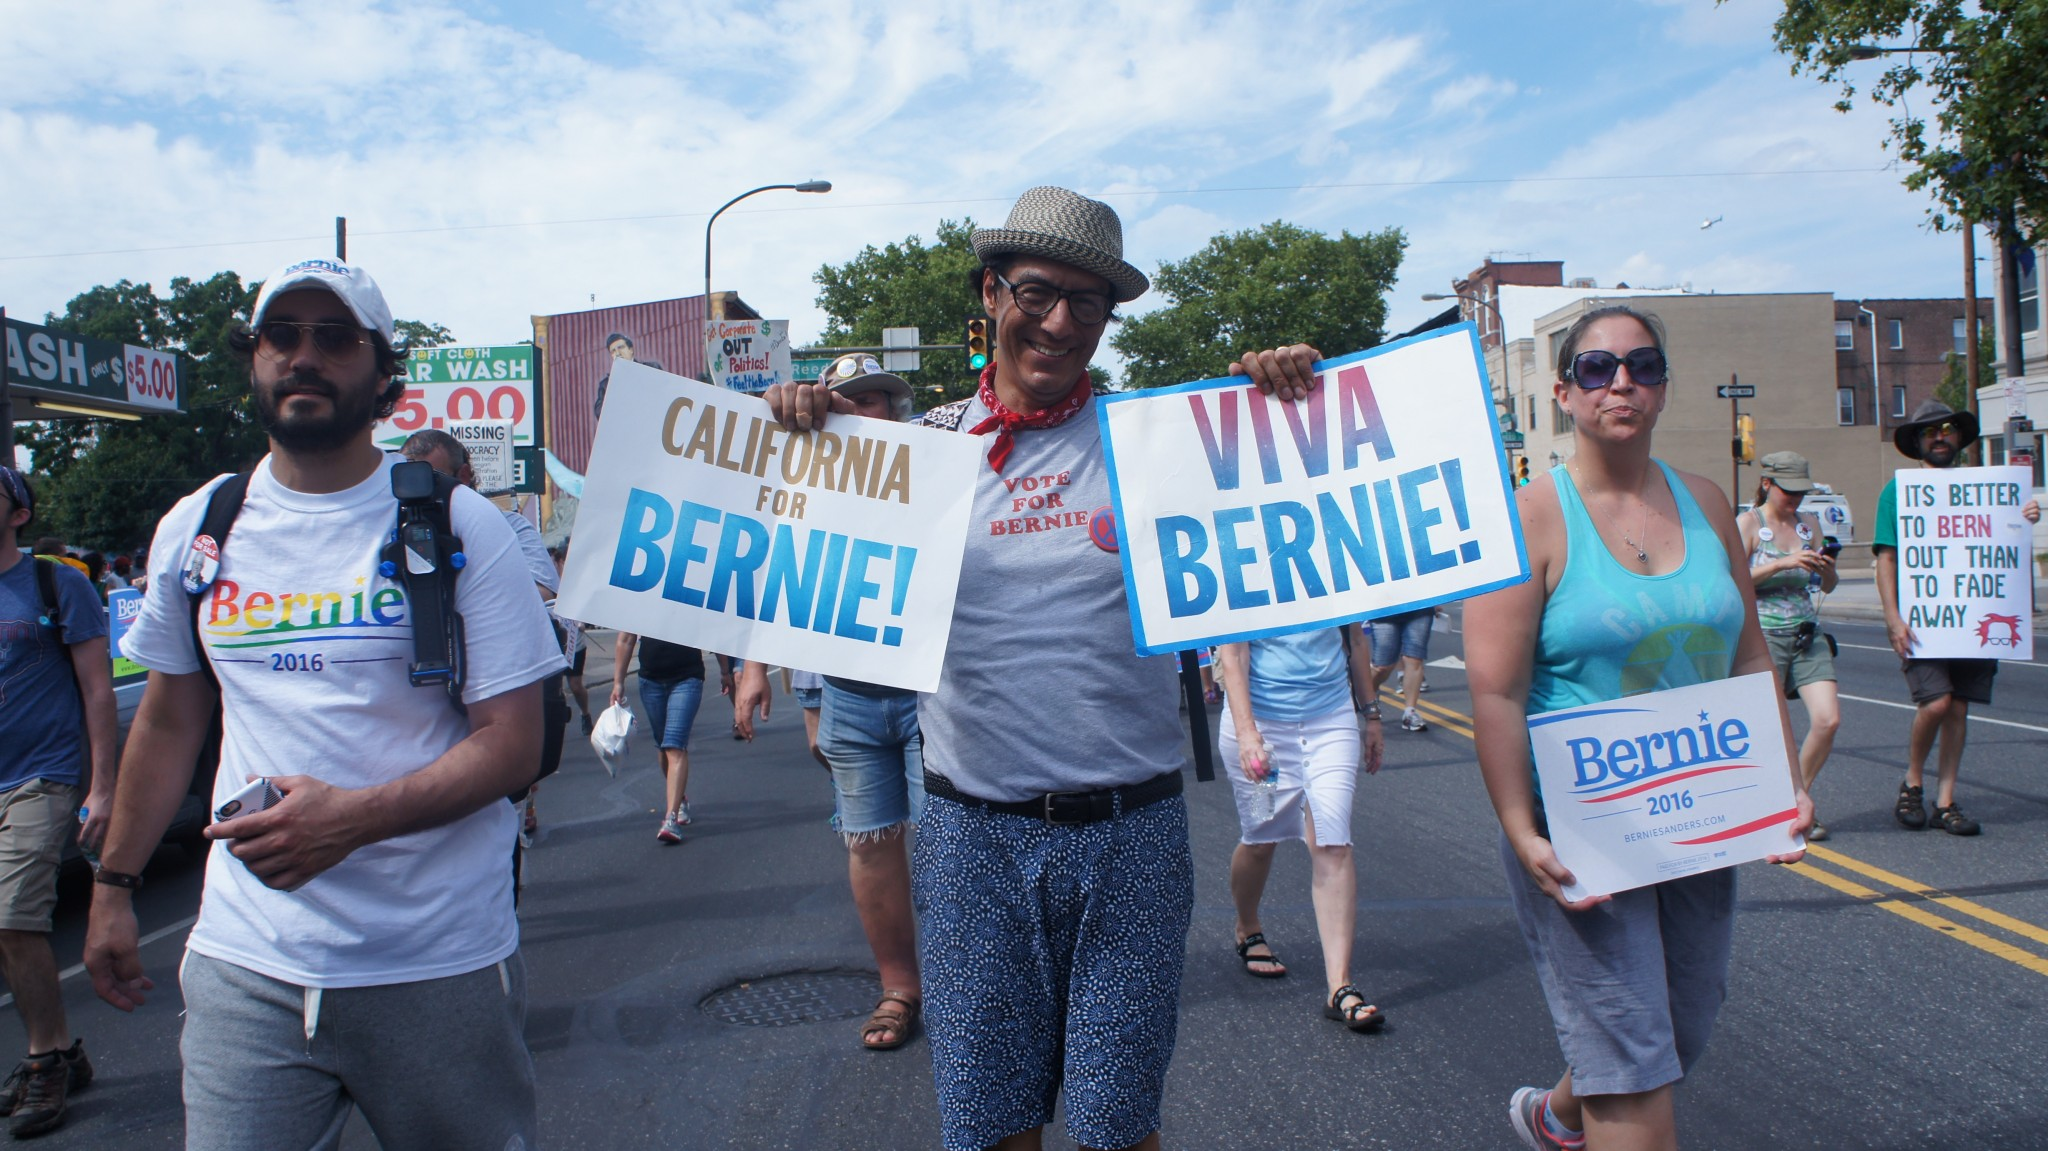 Can Hillary and Bernie supporters unite at the DNC?